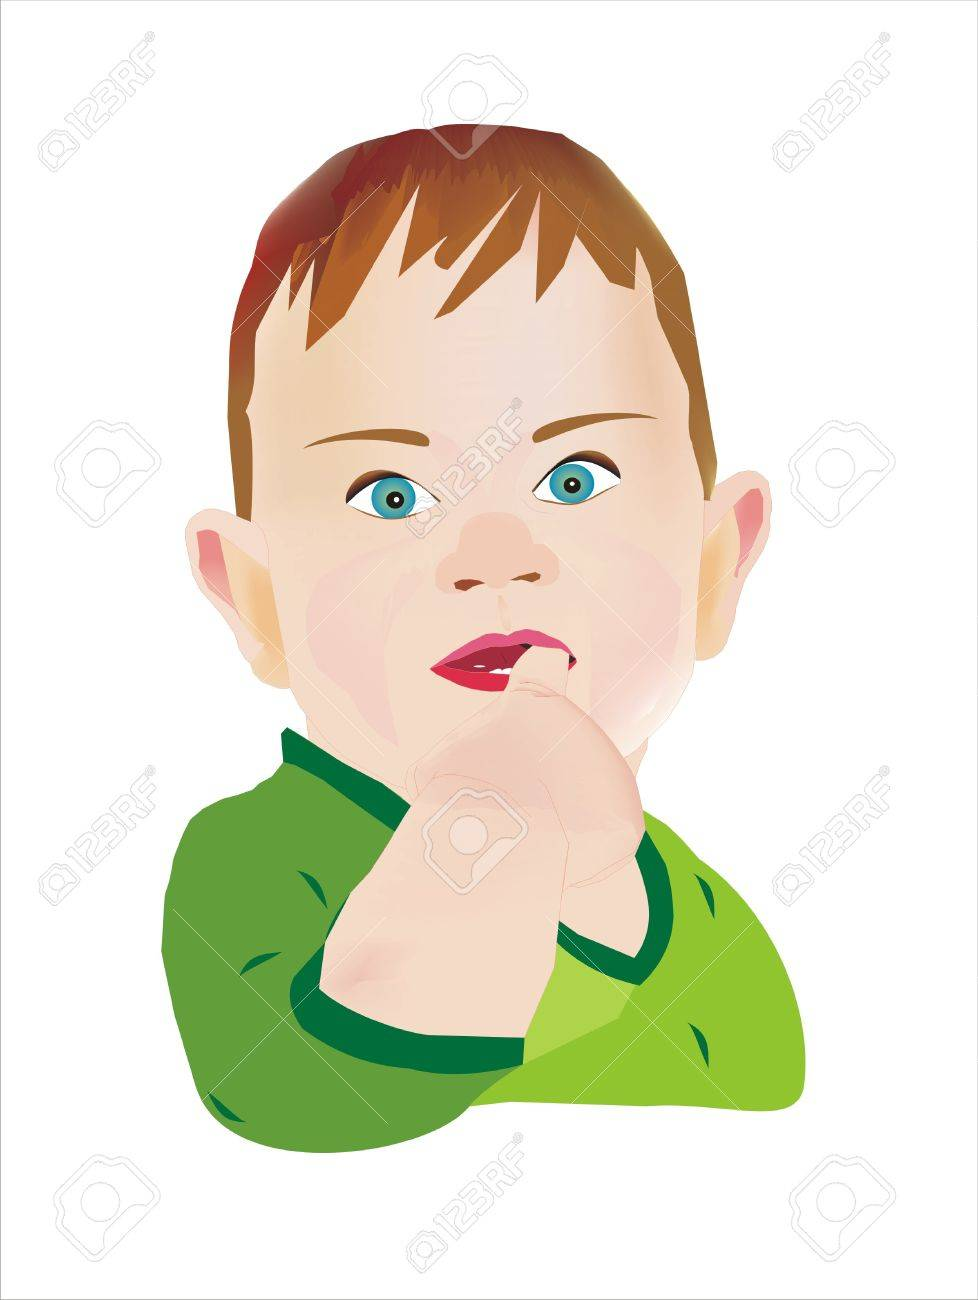 boy stuck his finger in his mouth Stock Photo - 7902729